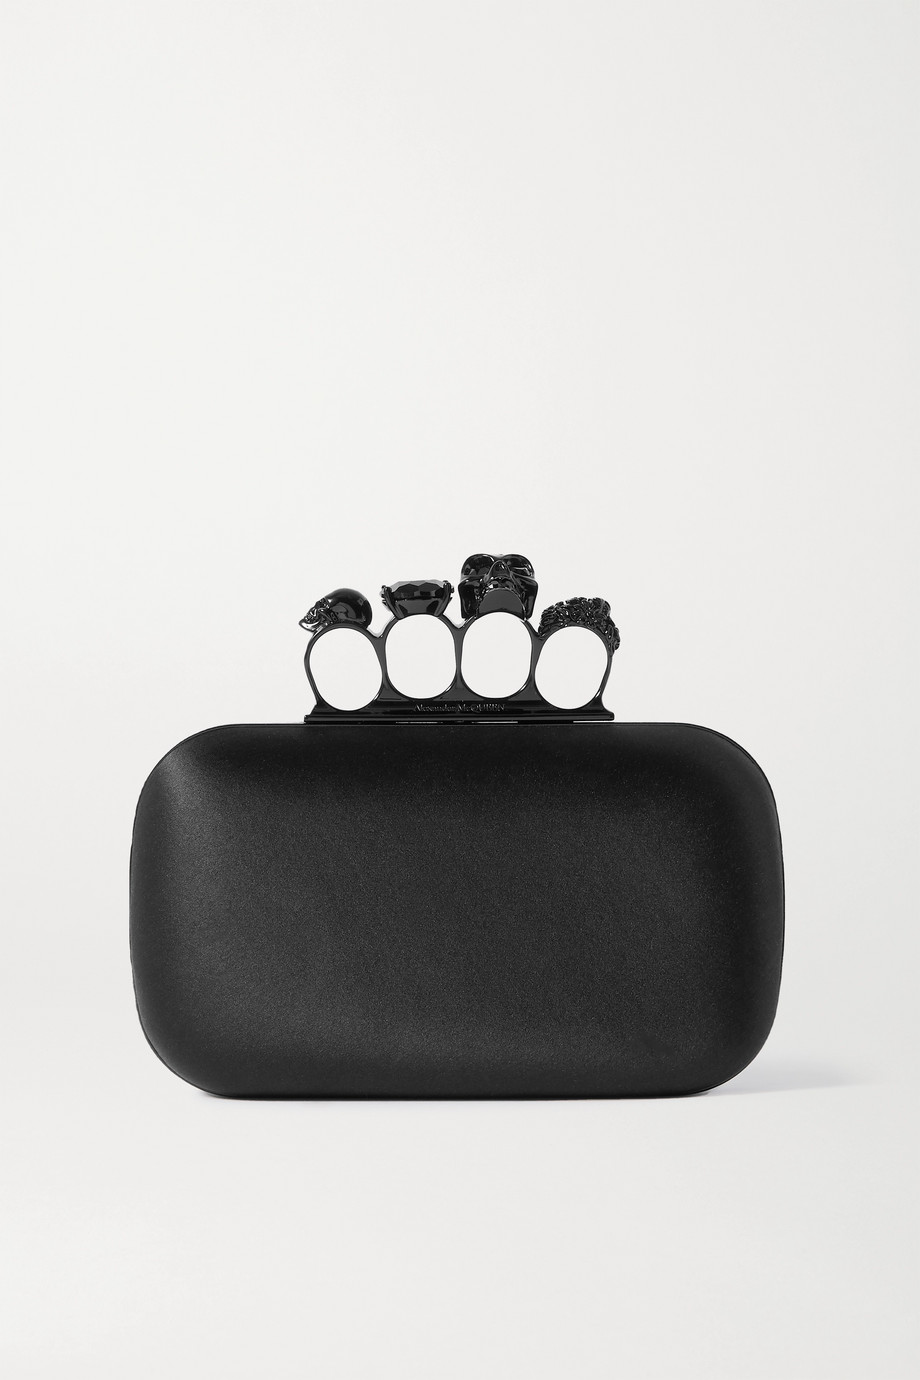 Alexander McQueen Four Ring embellished silk-satin clutch